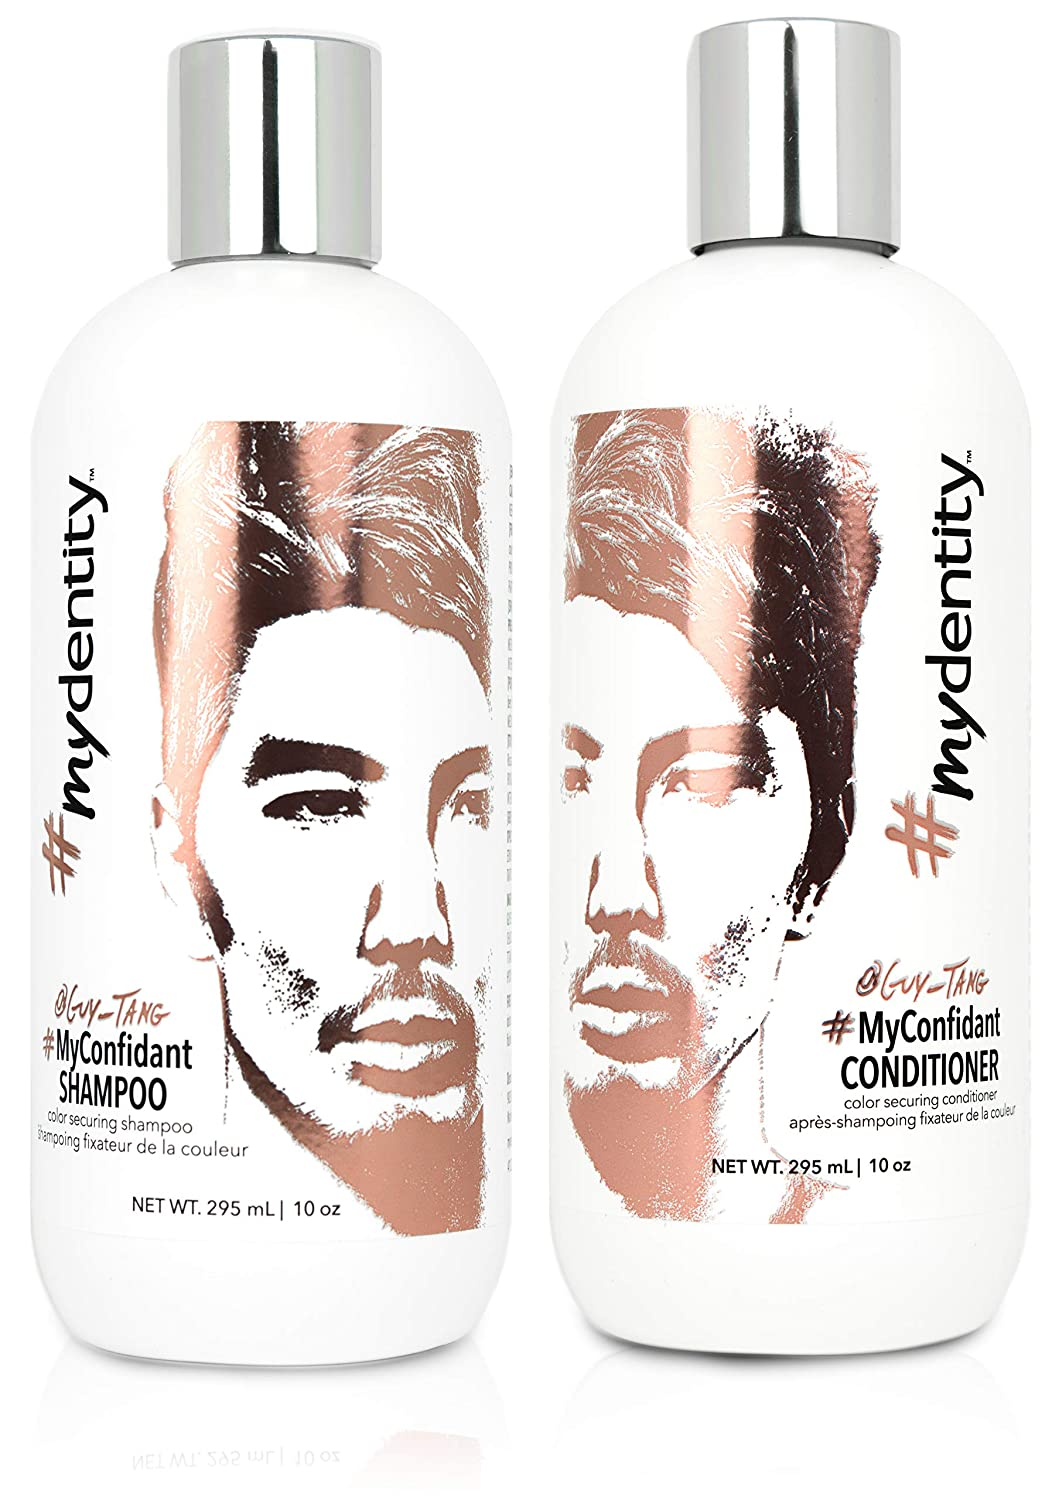 #mydentity Special price #MyConfidant Shampoo And Gorgeous Duo Conditioner Set 10-Ounc